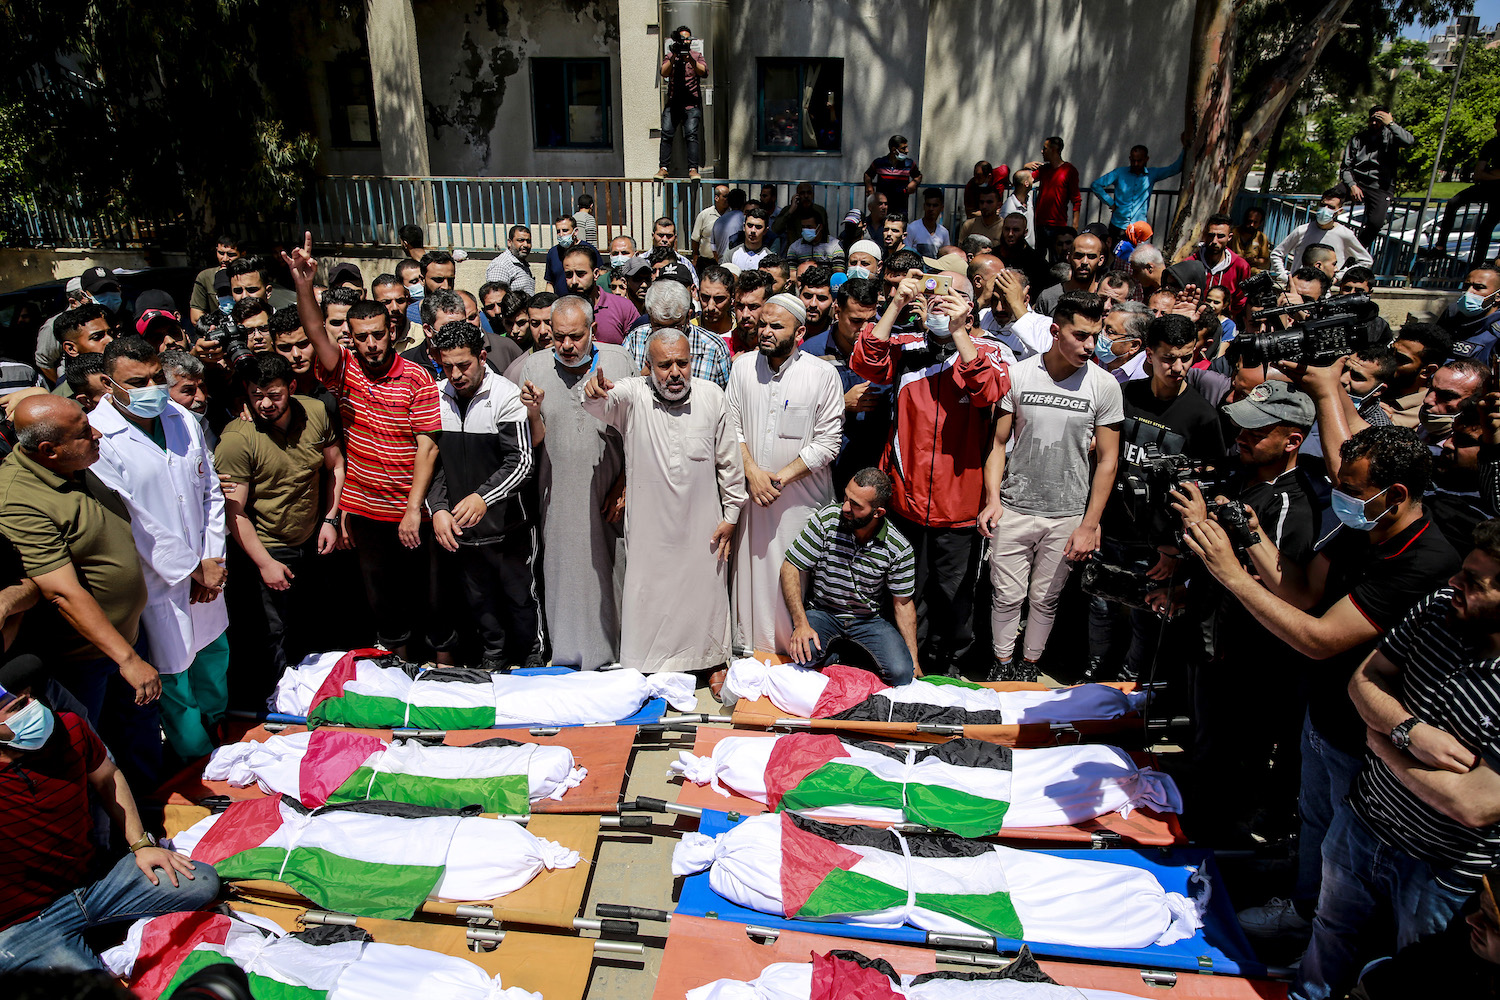 Palestinians attend the funeral of 10 members of Abu-Hatab family, who were killed by an Israeli air strike in Al-Shati Refugee Camp in Gaza City, May 15, 2021. (Atia Mohammed/Flash90)